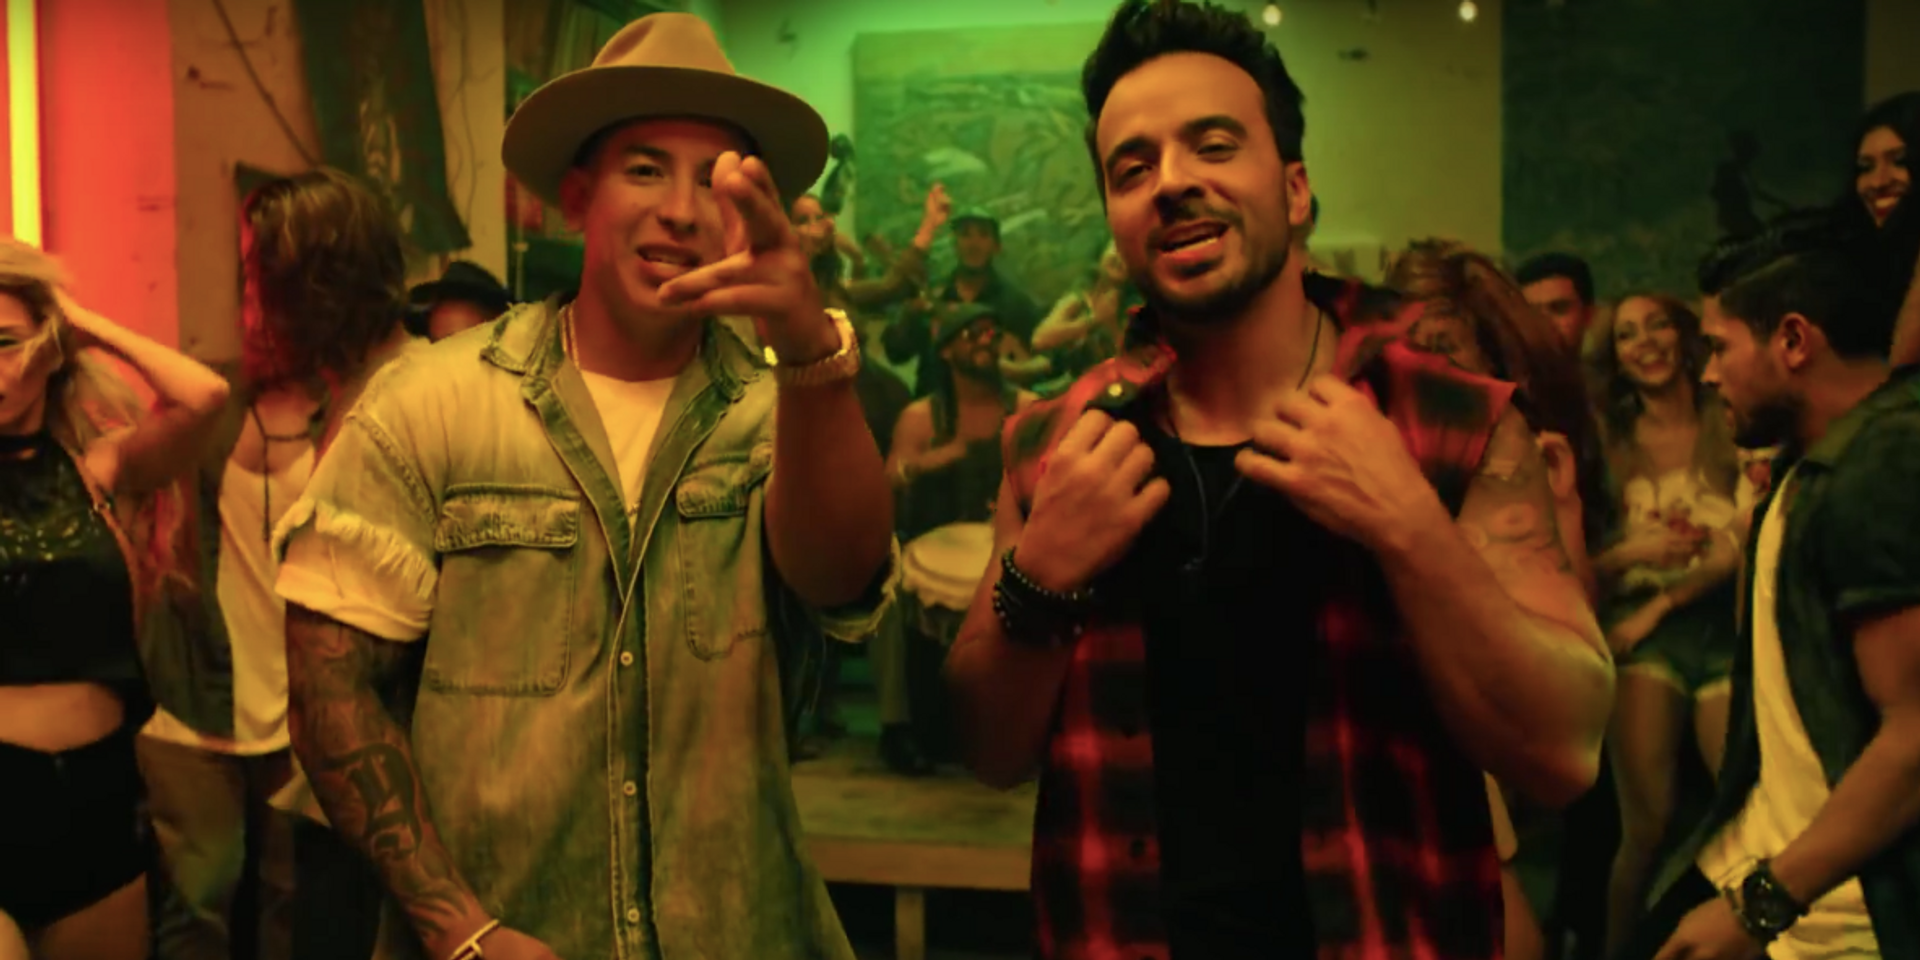 Despacito Music Video Briefly Removed From Youtube By Hackers